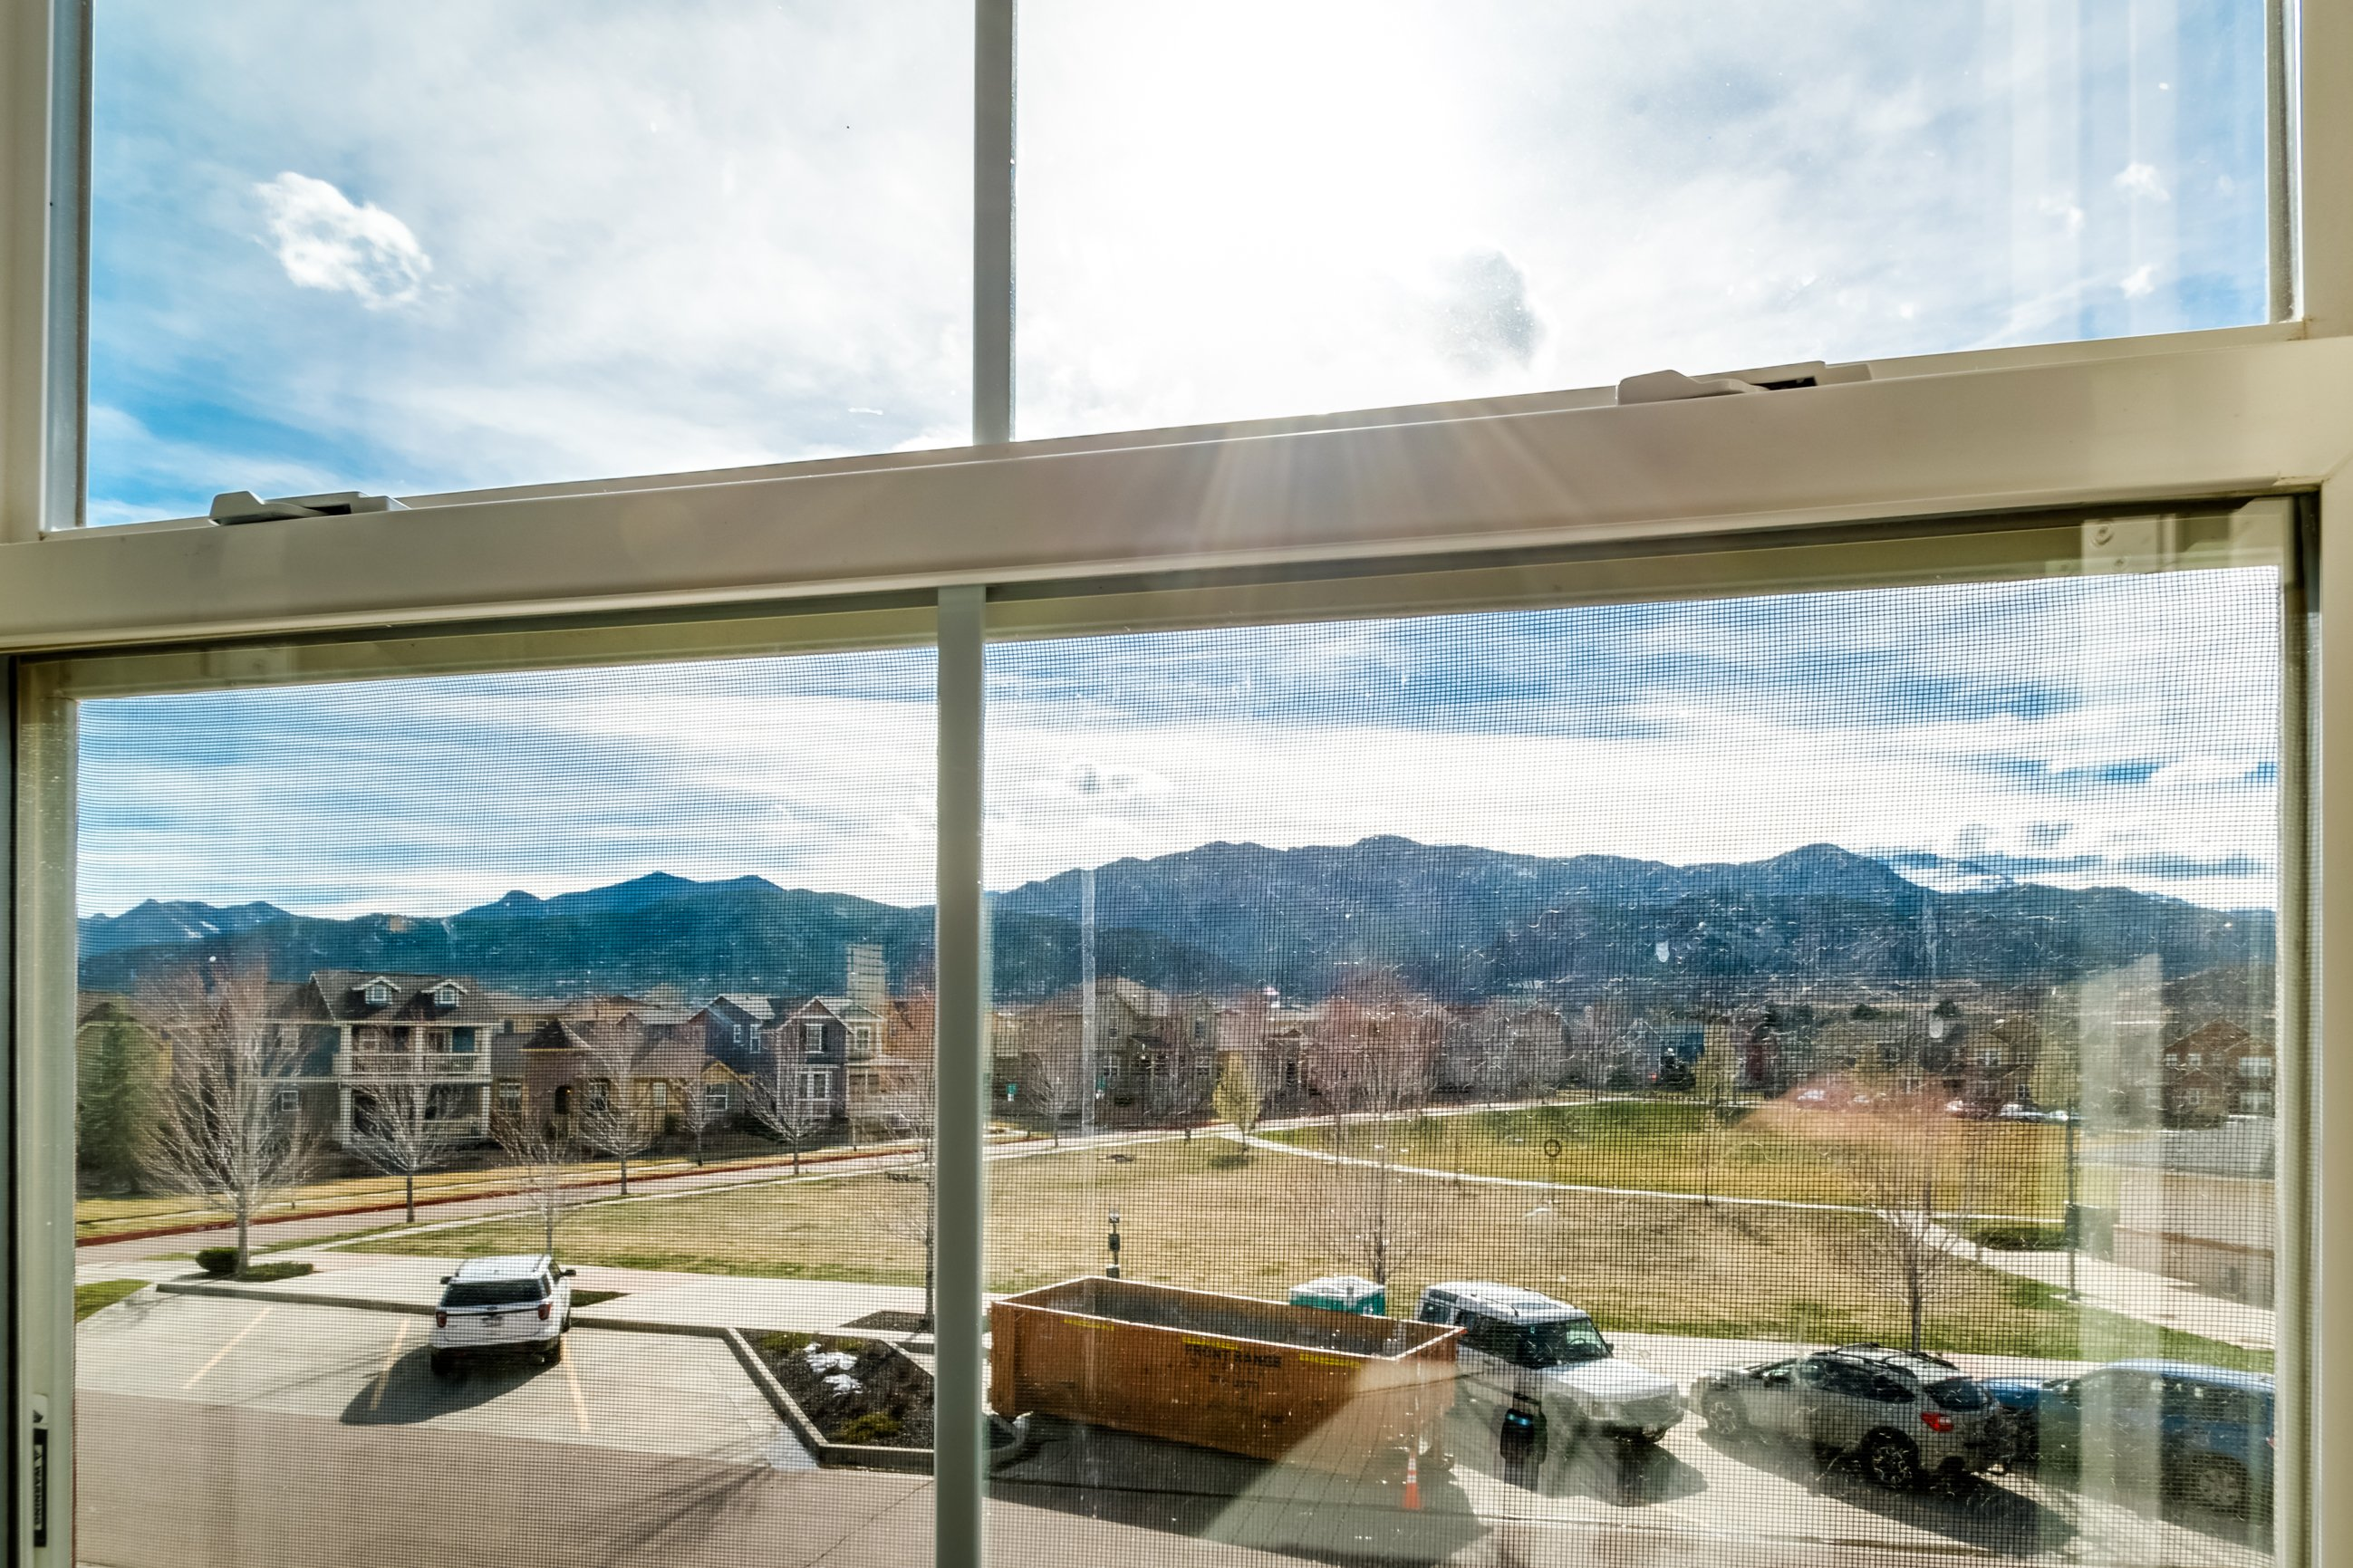 Gold Hill Mesa condo for sale, picture of Pikes Peak from the upper level of the home